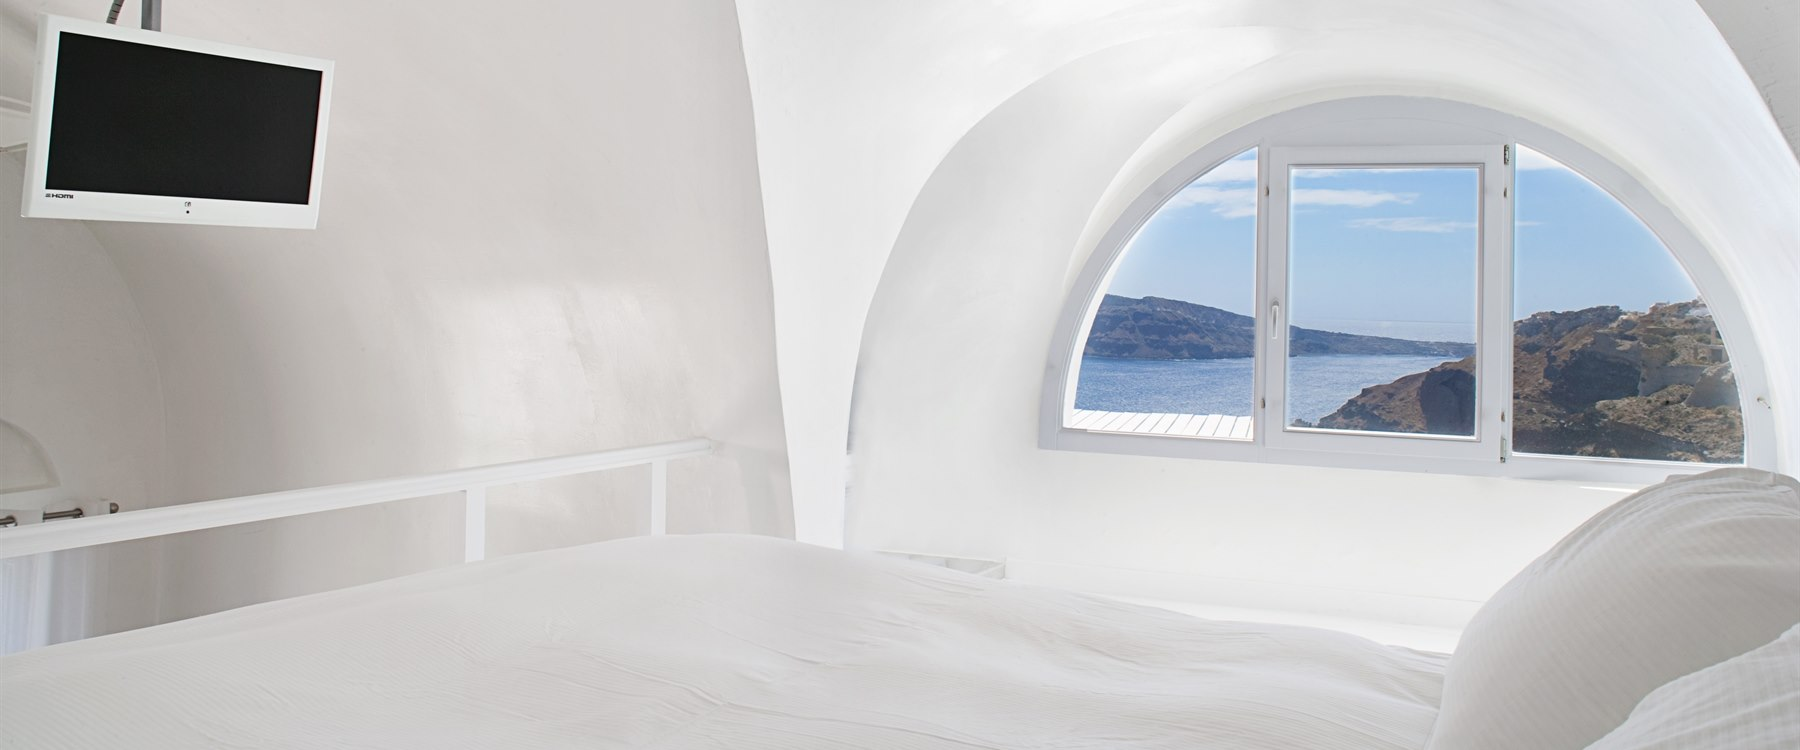 suite at Katikies, Santorini